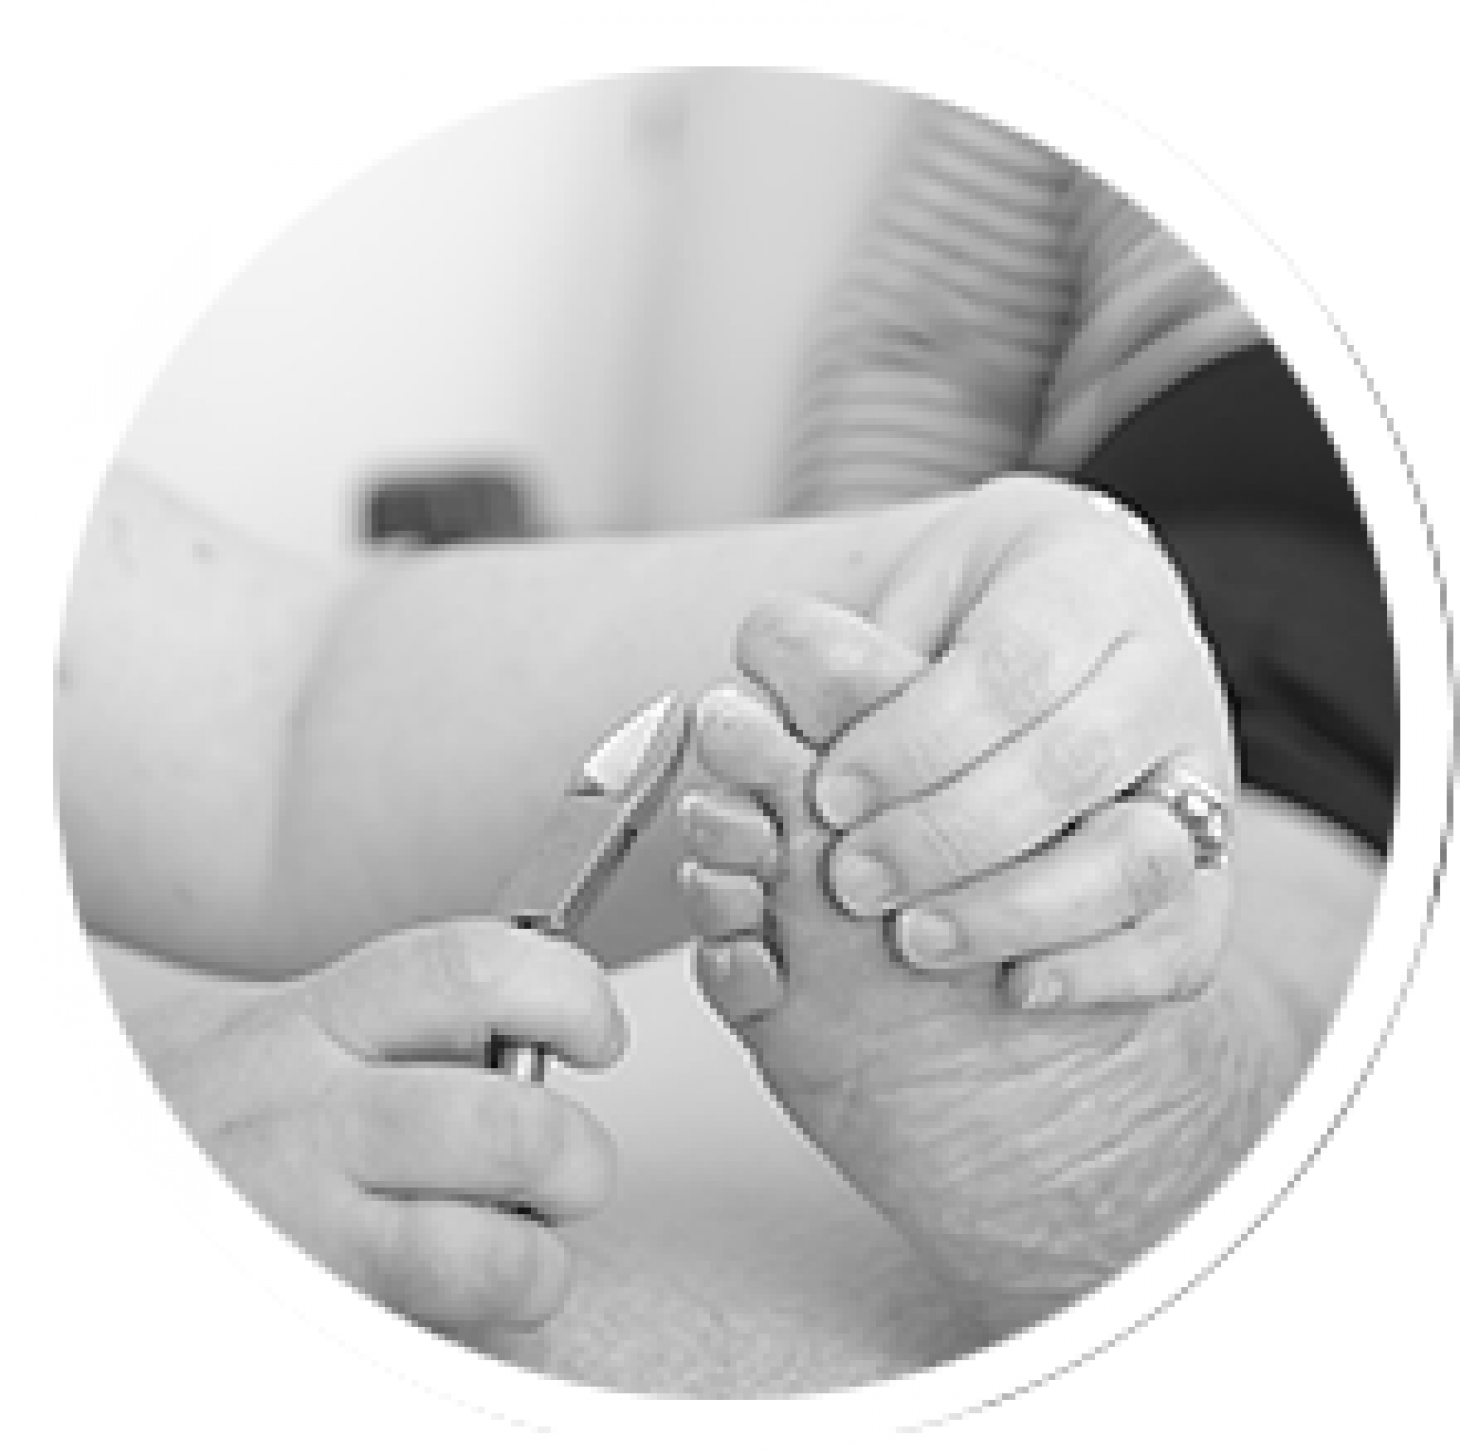 geriatric care at Dalkey Podiatry Clinic, Dalkey